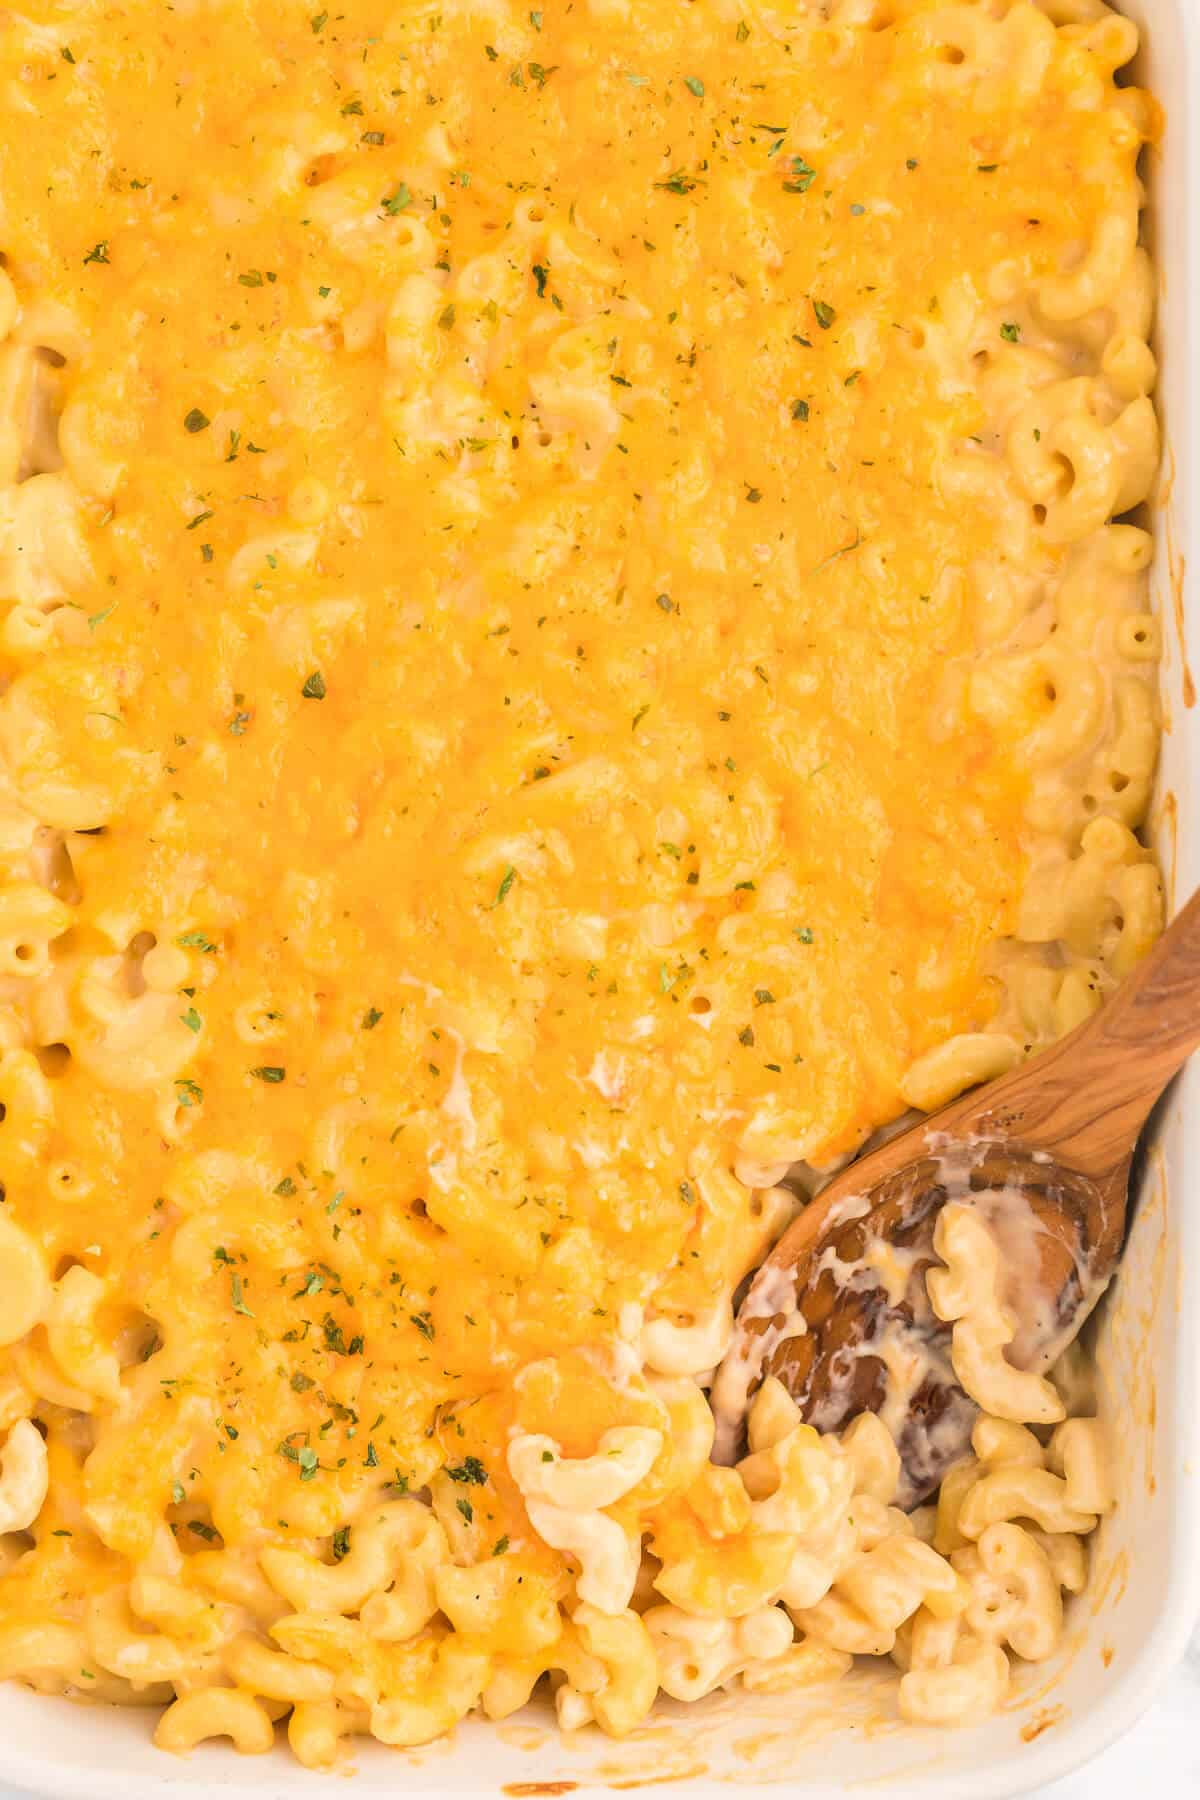 Baked Macaroni and Cheese - This old-fashioned classic recipe is a family favorite dinner and so easy to make. Tender elbow macaroni noodles are enveloped in an ultra creamy homemade cheese sauce and covered with melted cheddar cheese.